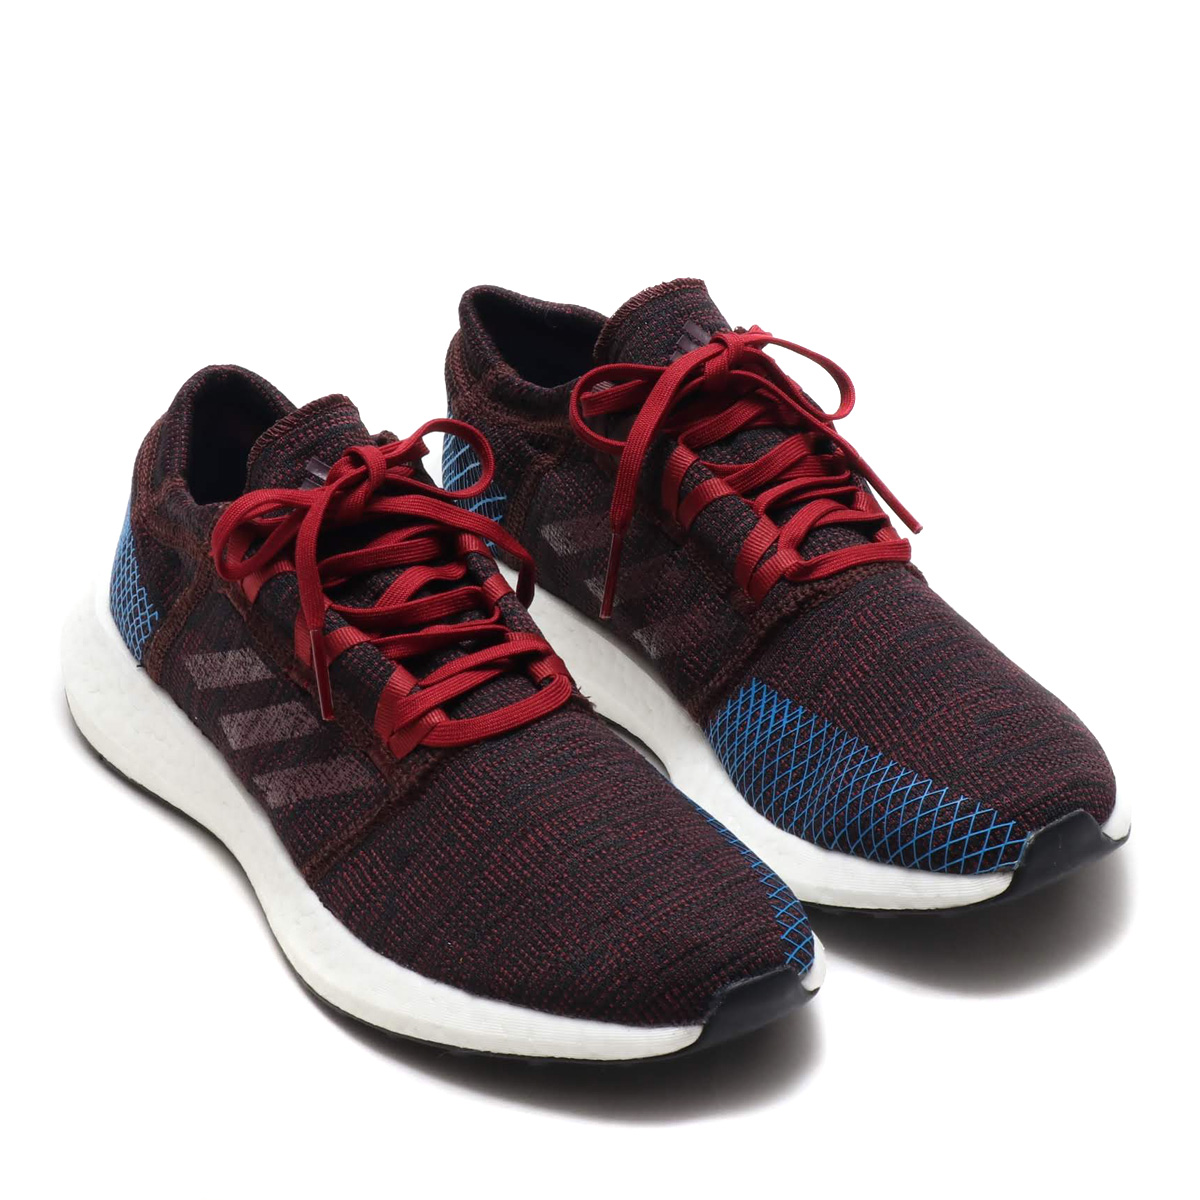 adidas PureBOOST GO (Adidas pure boost GO) knight red Noble Marron F18 blight blue 18FW I